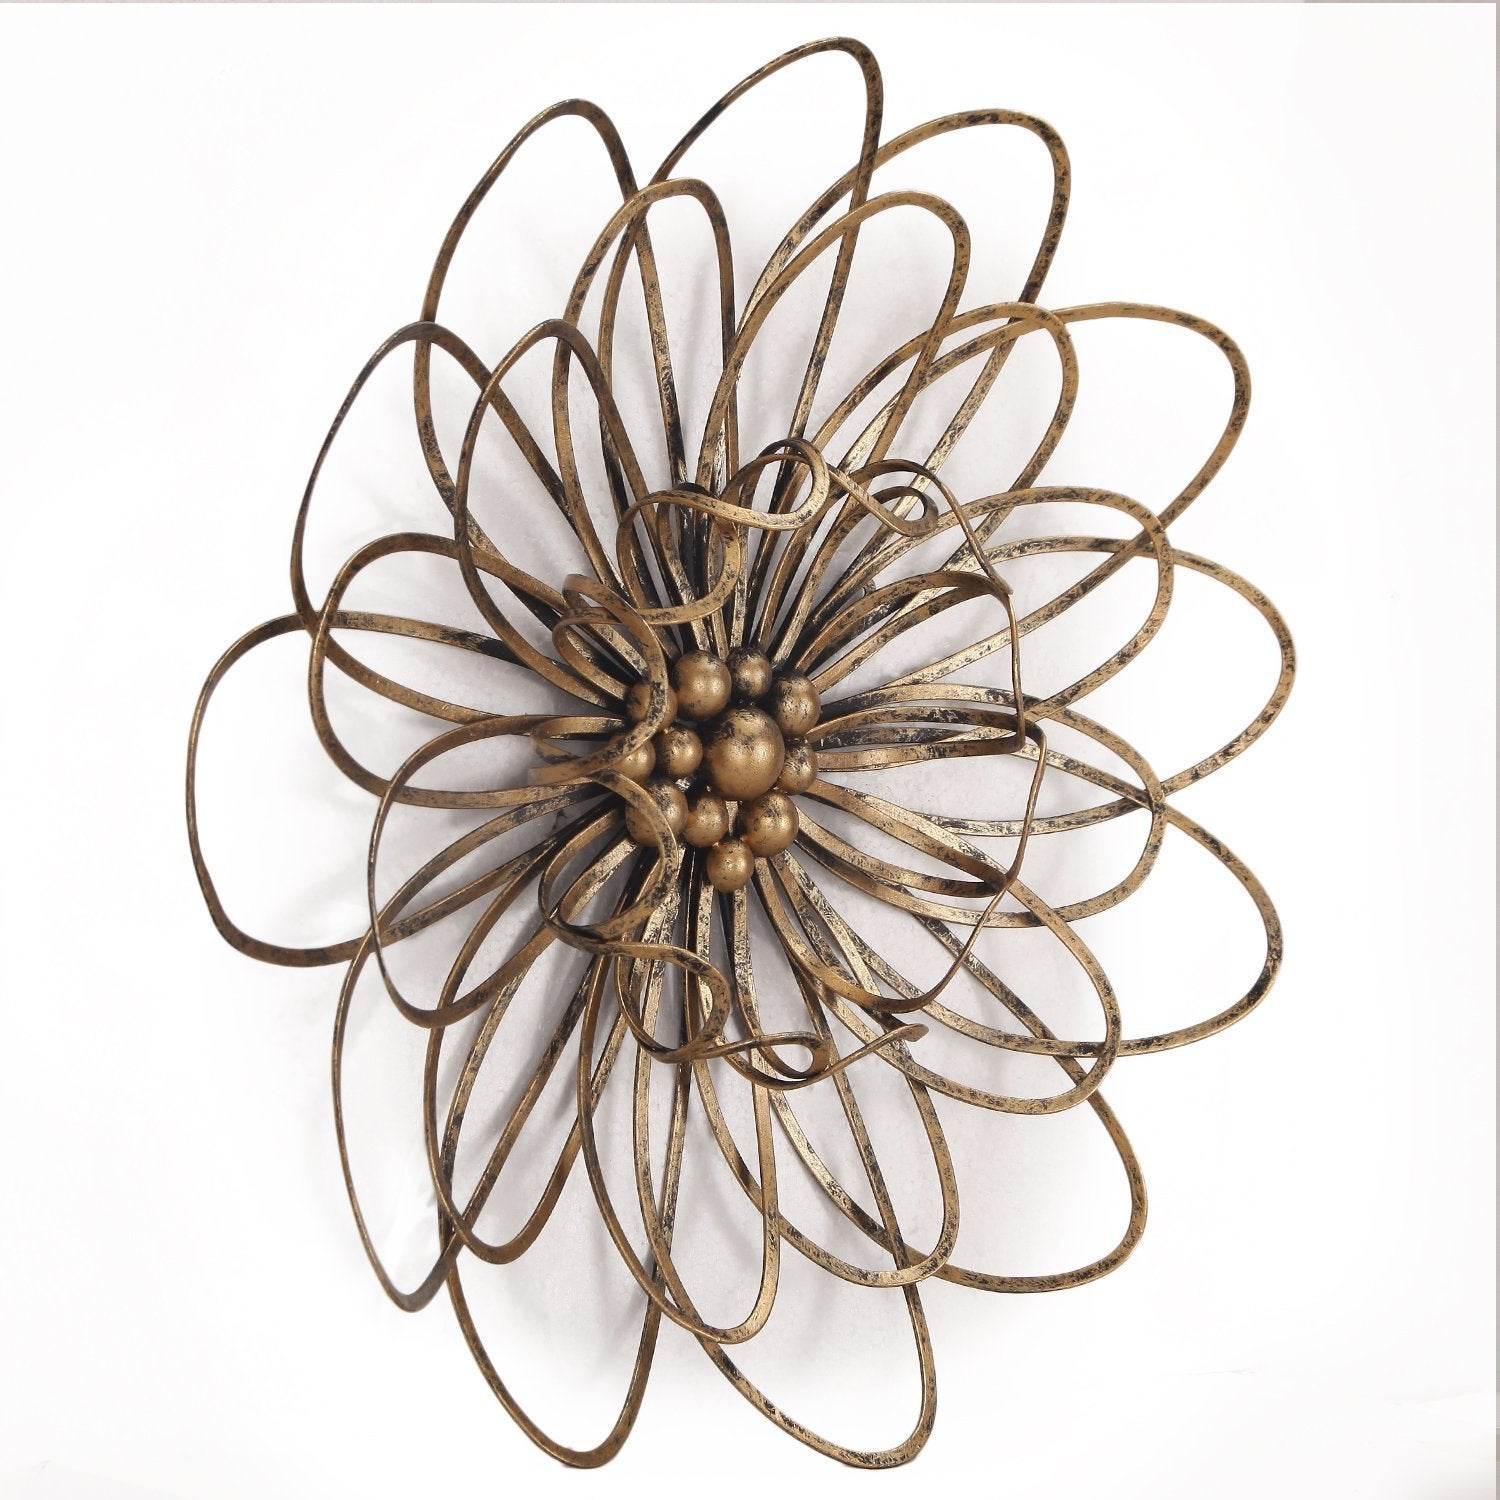 Flower Urban Design Metal Wall Decor regarding Flower Urban Design Metal Wall Decor (Image 15 of 30)